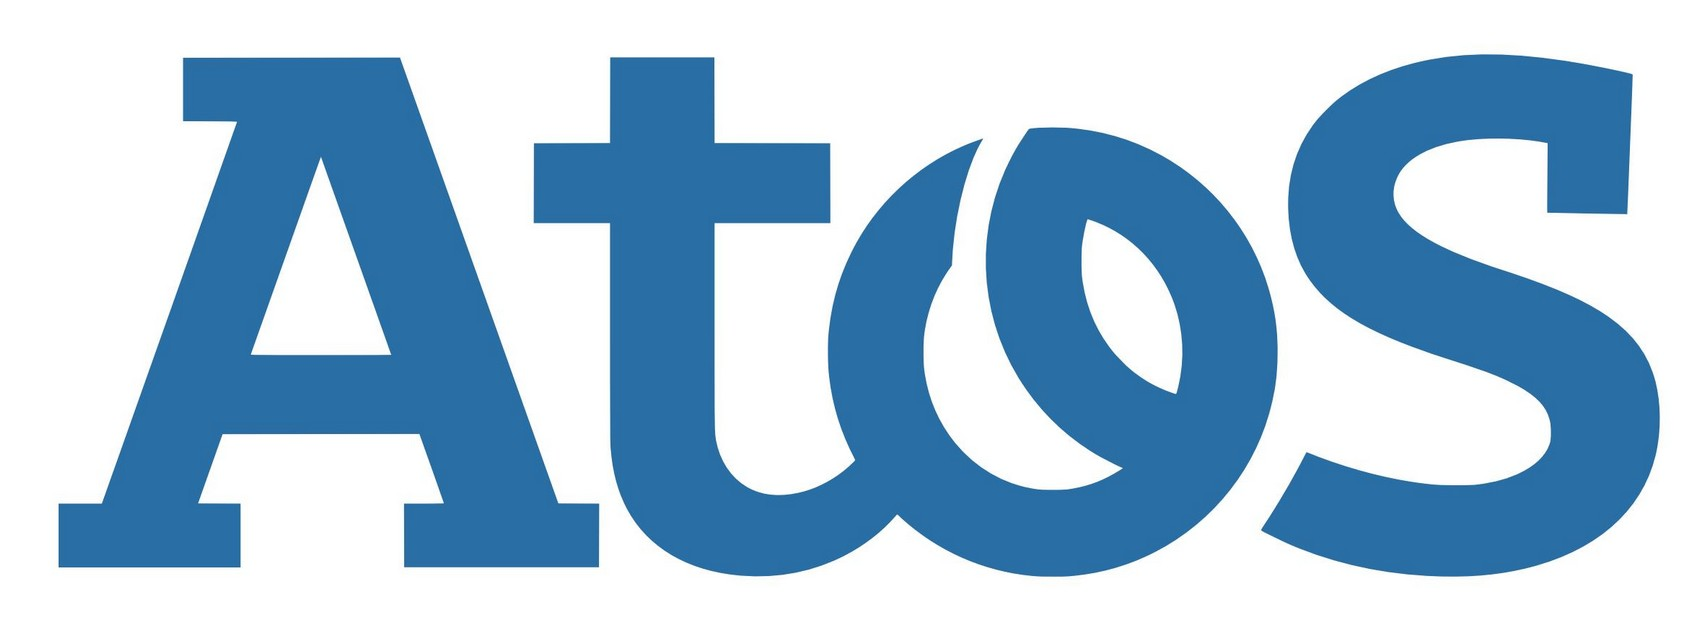 Atos is an international information technology services company with  annual revenues of EUR 8.5 billion and 74,000 employees in 48 countries. - Atos Vector PNG